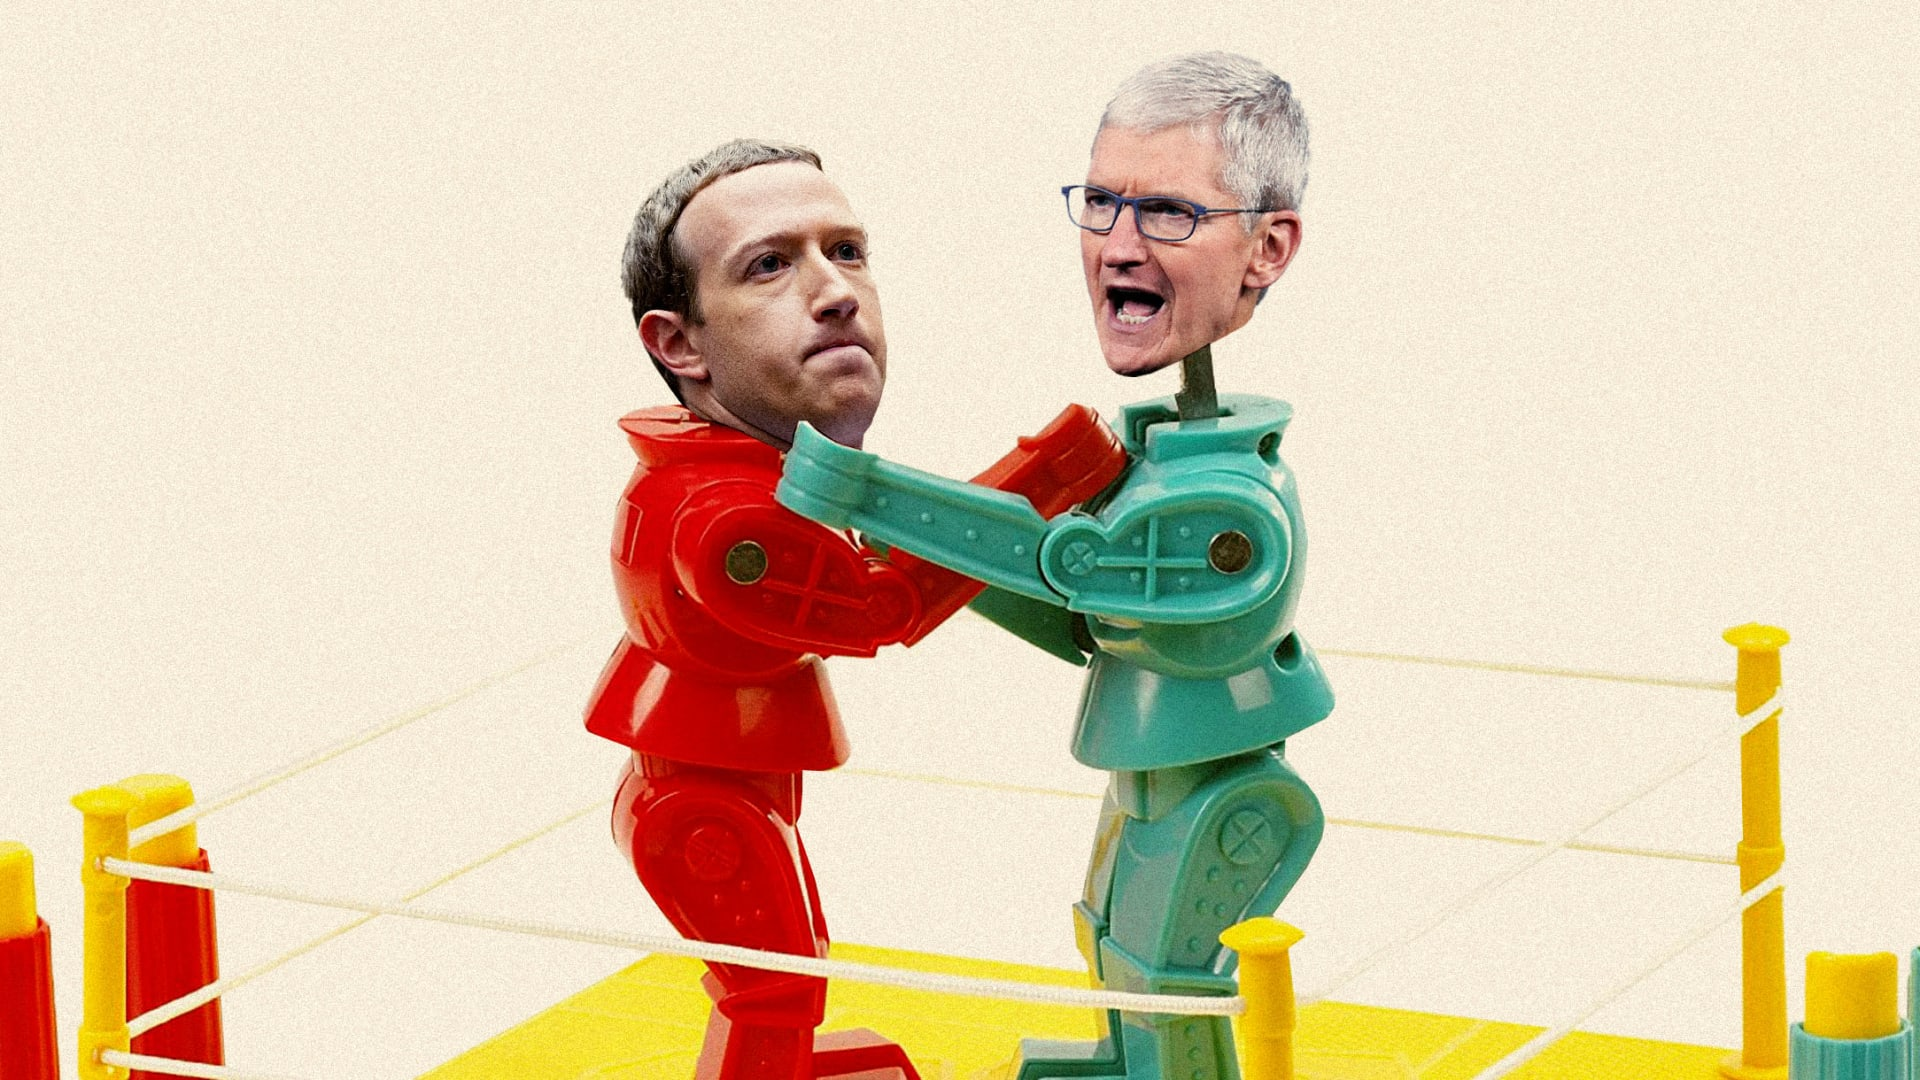 Apple Versus Facebook: What You Need to Know About Tim Cook and Mark Zuckerberg's Battle